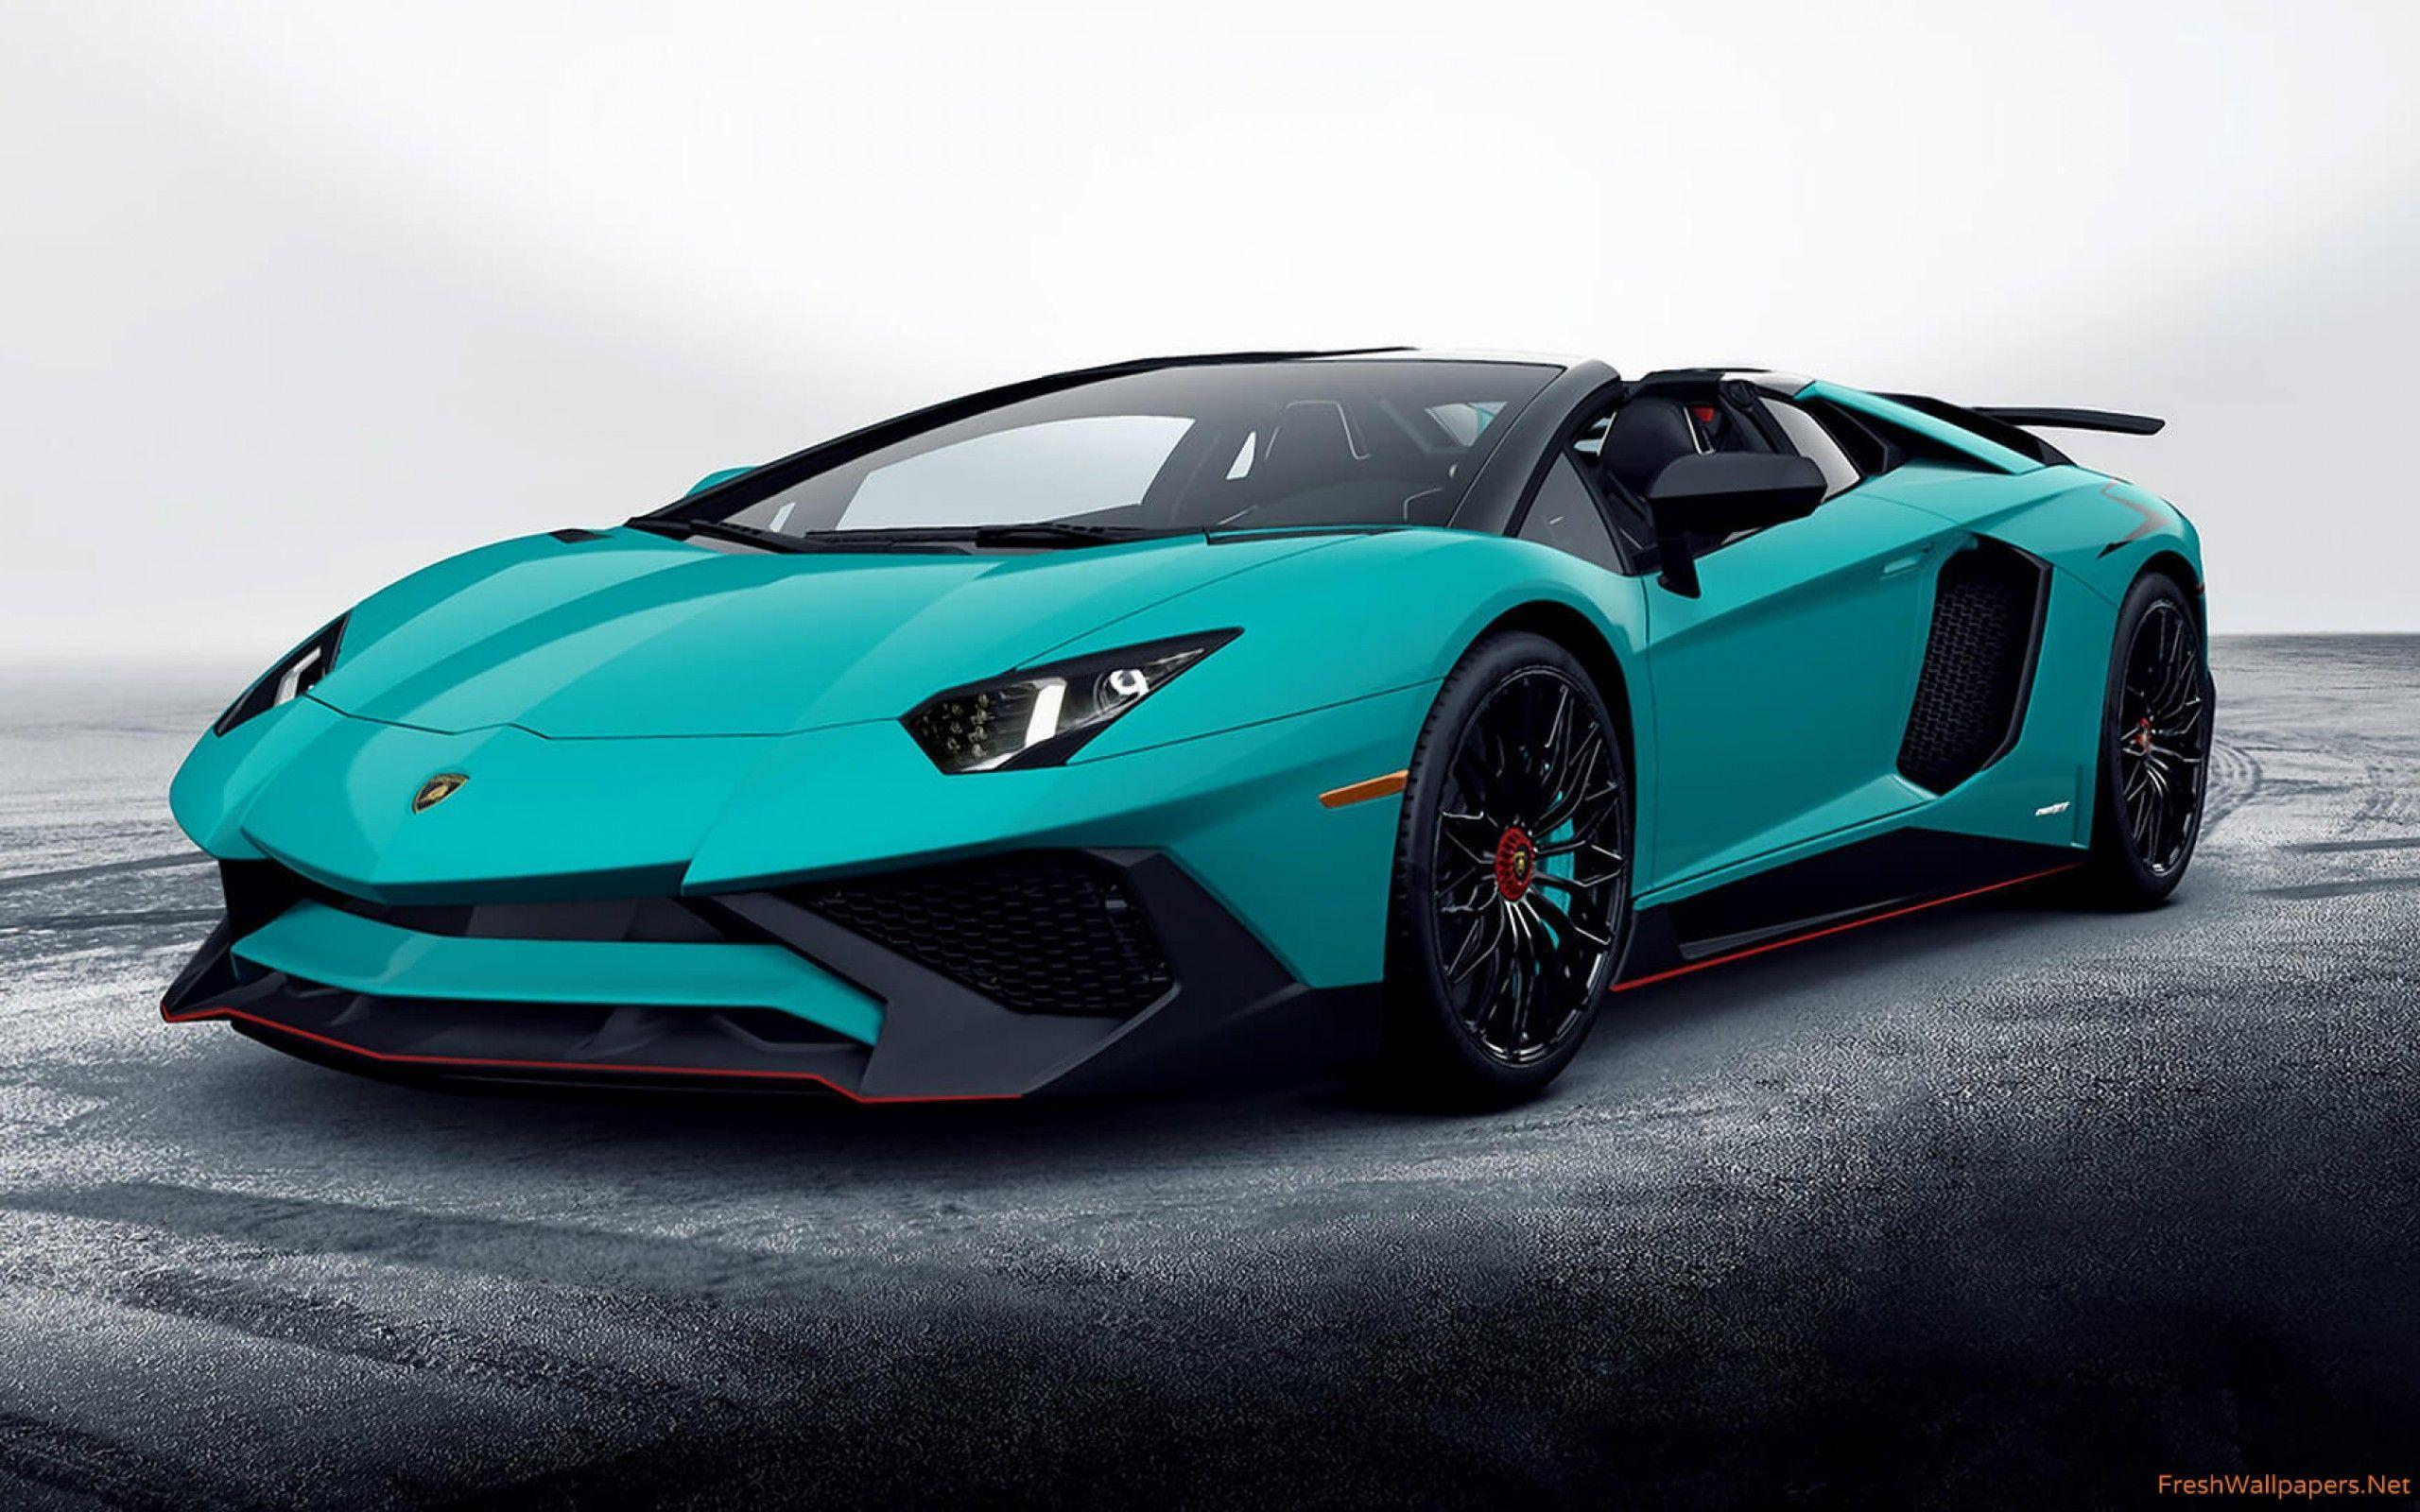 Green Lamborghini Aventador Super Veloce Supercar Wallpapers Wallpaper Cave